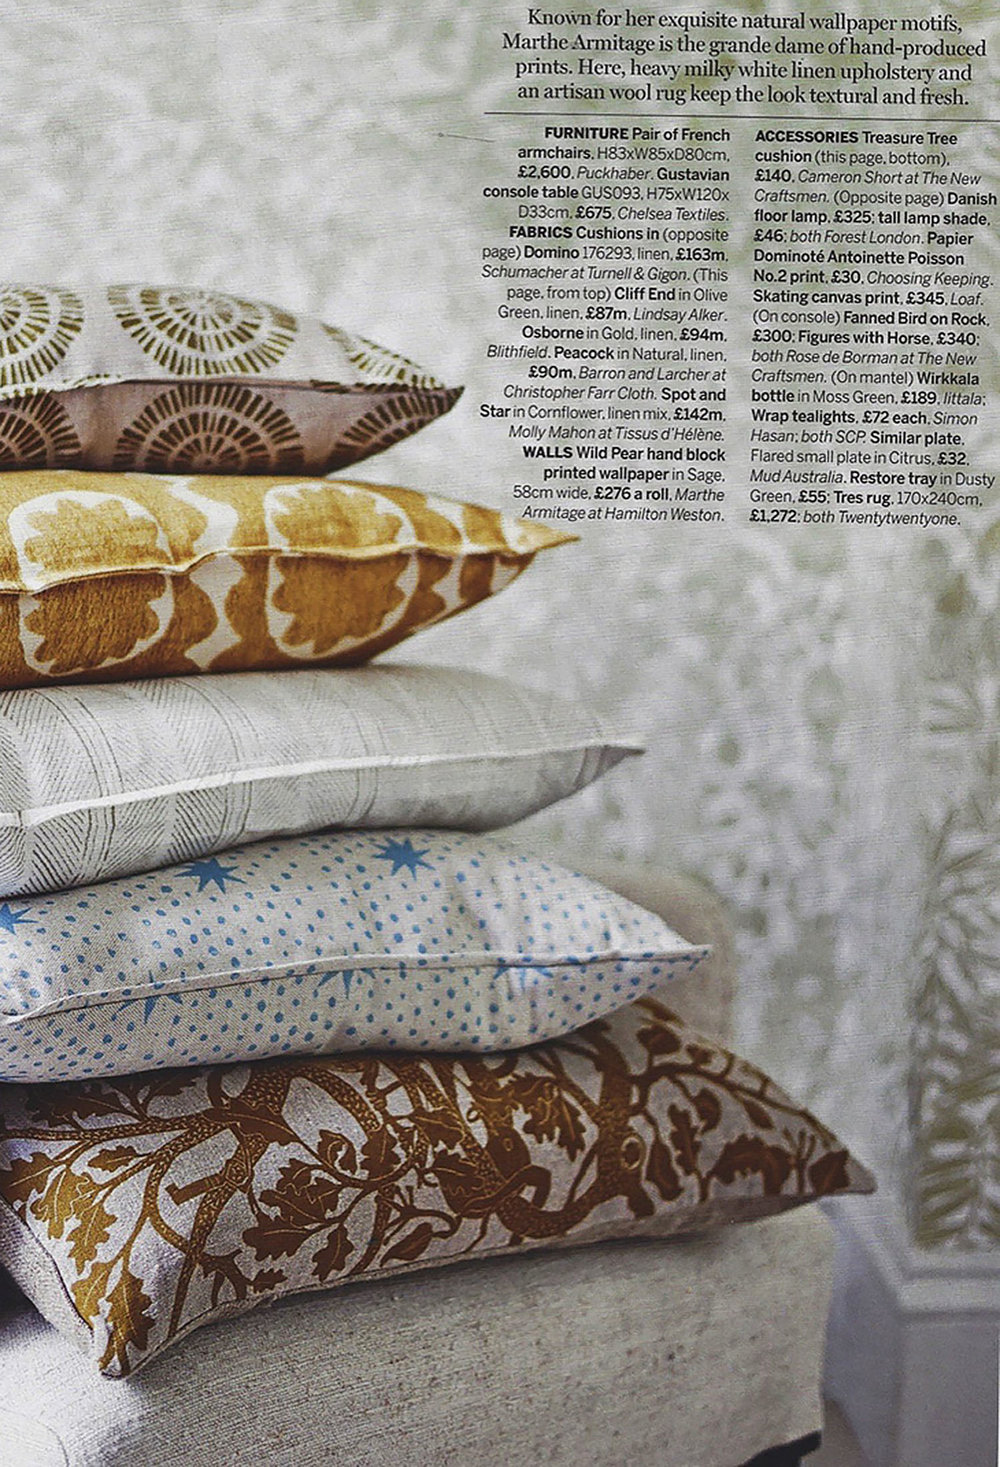 House & Gardens - Feb 2017 - 'Inspired by Block Prints' - Page 65 - Osborne - Gold.jpg